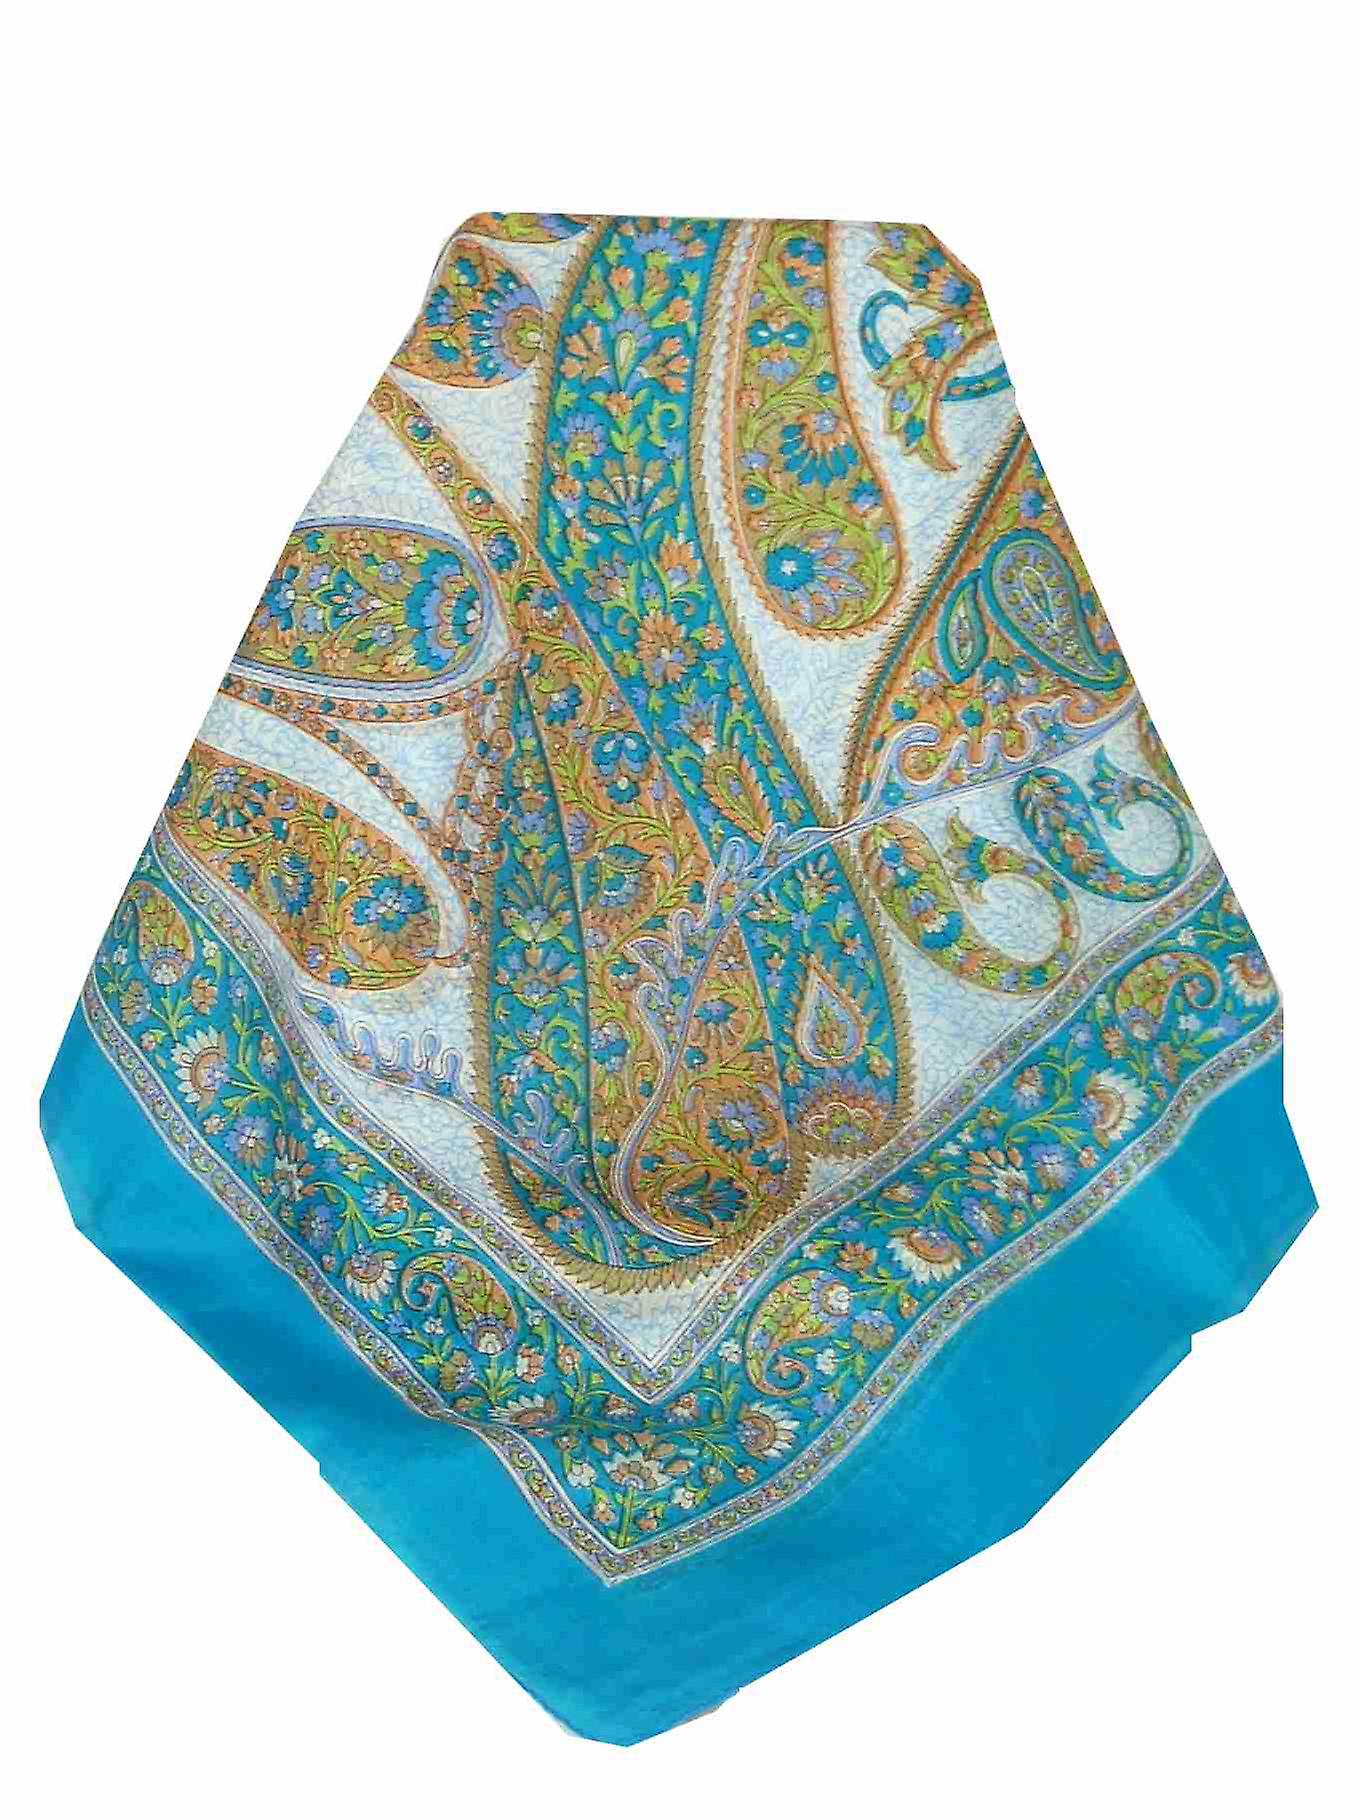 Mulberry Silk Traditional Square Scarf Hindon Aquamarine by Pashmina & Silk